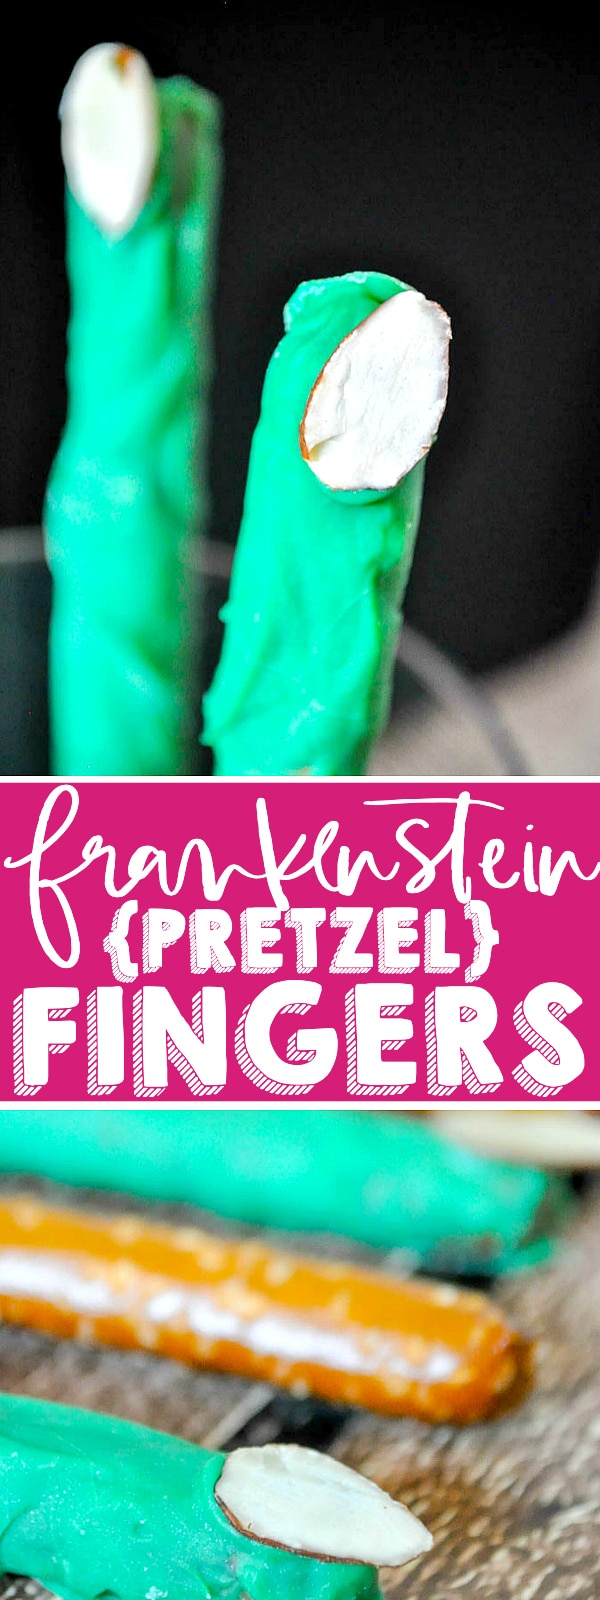 Make spooky Pretzel Frankenstein Fingers for an easy Halloween Treat that needs only 3 ingredients! Plus, it's a super kid friendly recipe for them to help making this fun Halloween dessert. | The Love Nerds #halloweendessert #chocolatepretzels #monsterrecipe